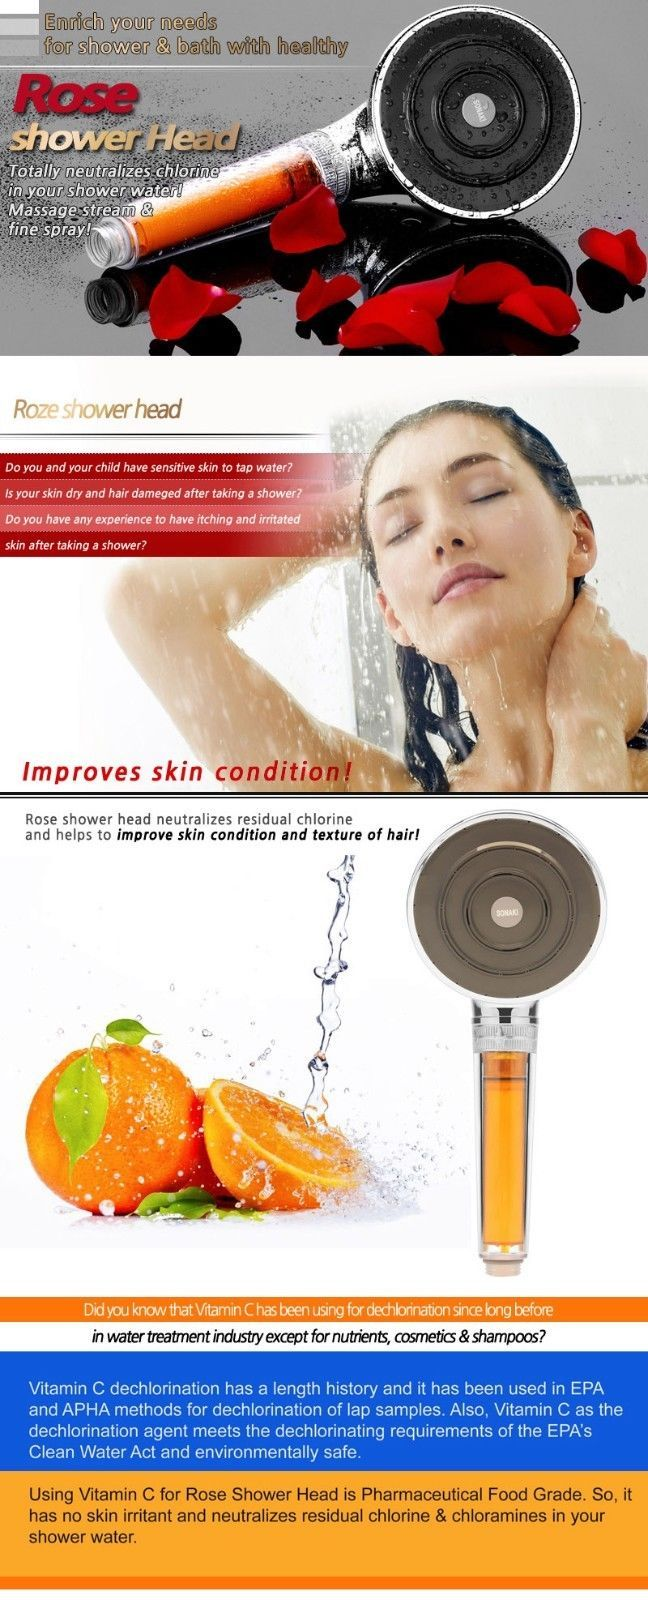 VitaFresh F Vitamin C Shower Head Deluxe Activated Carbon Fiber Shower Filter